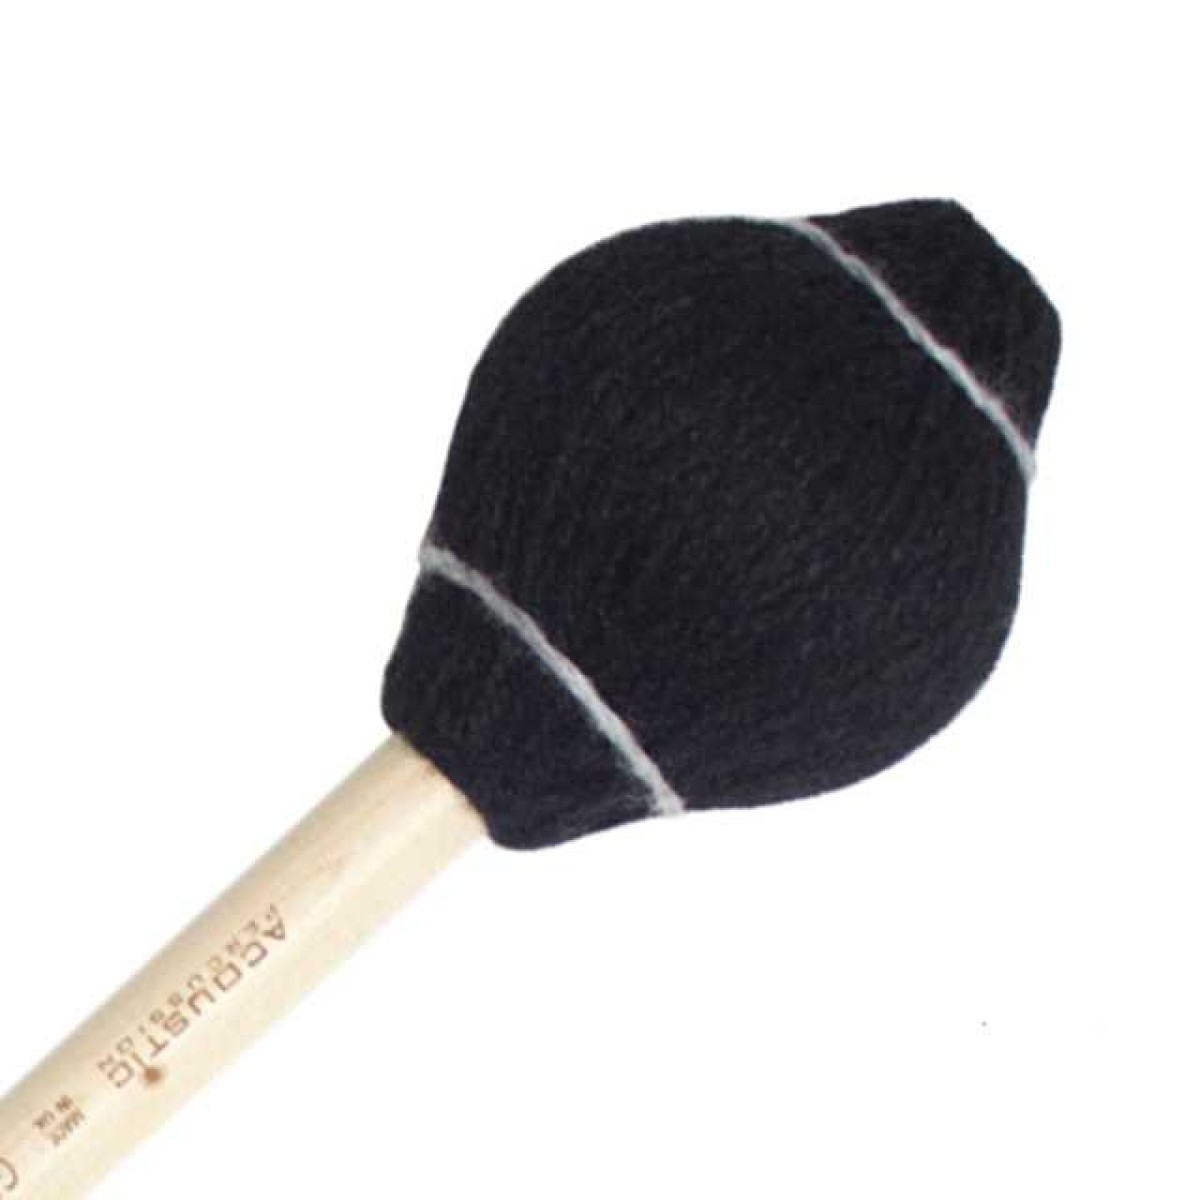 Acoustic Percussion GB4 Medium Soft Roller Mallets